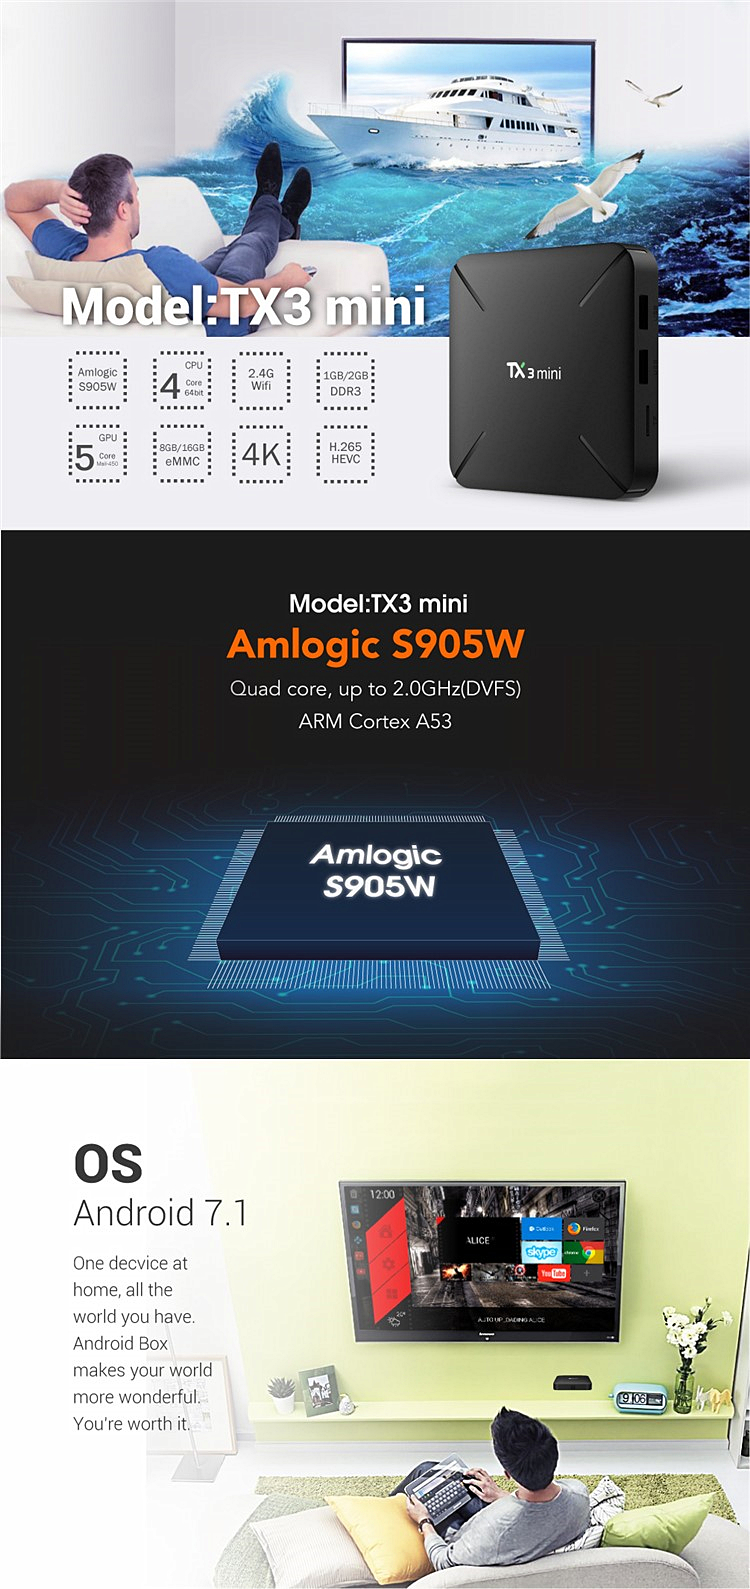 Mejor oferta TX3 mini-H 2 GB 16 GB Amlogic S905W Quad Core 2,4 GHz WiFi Android 7,1 caja de Tv